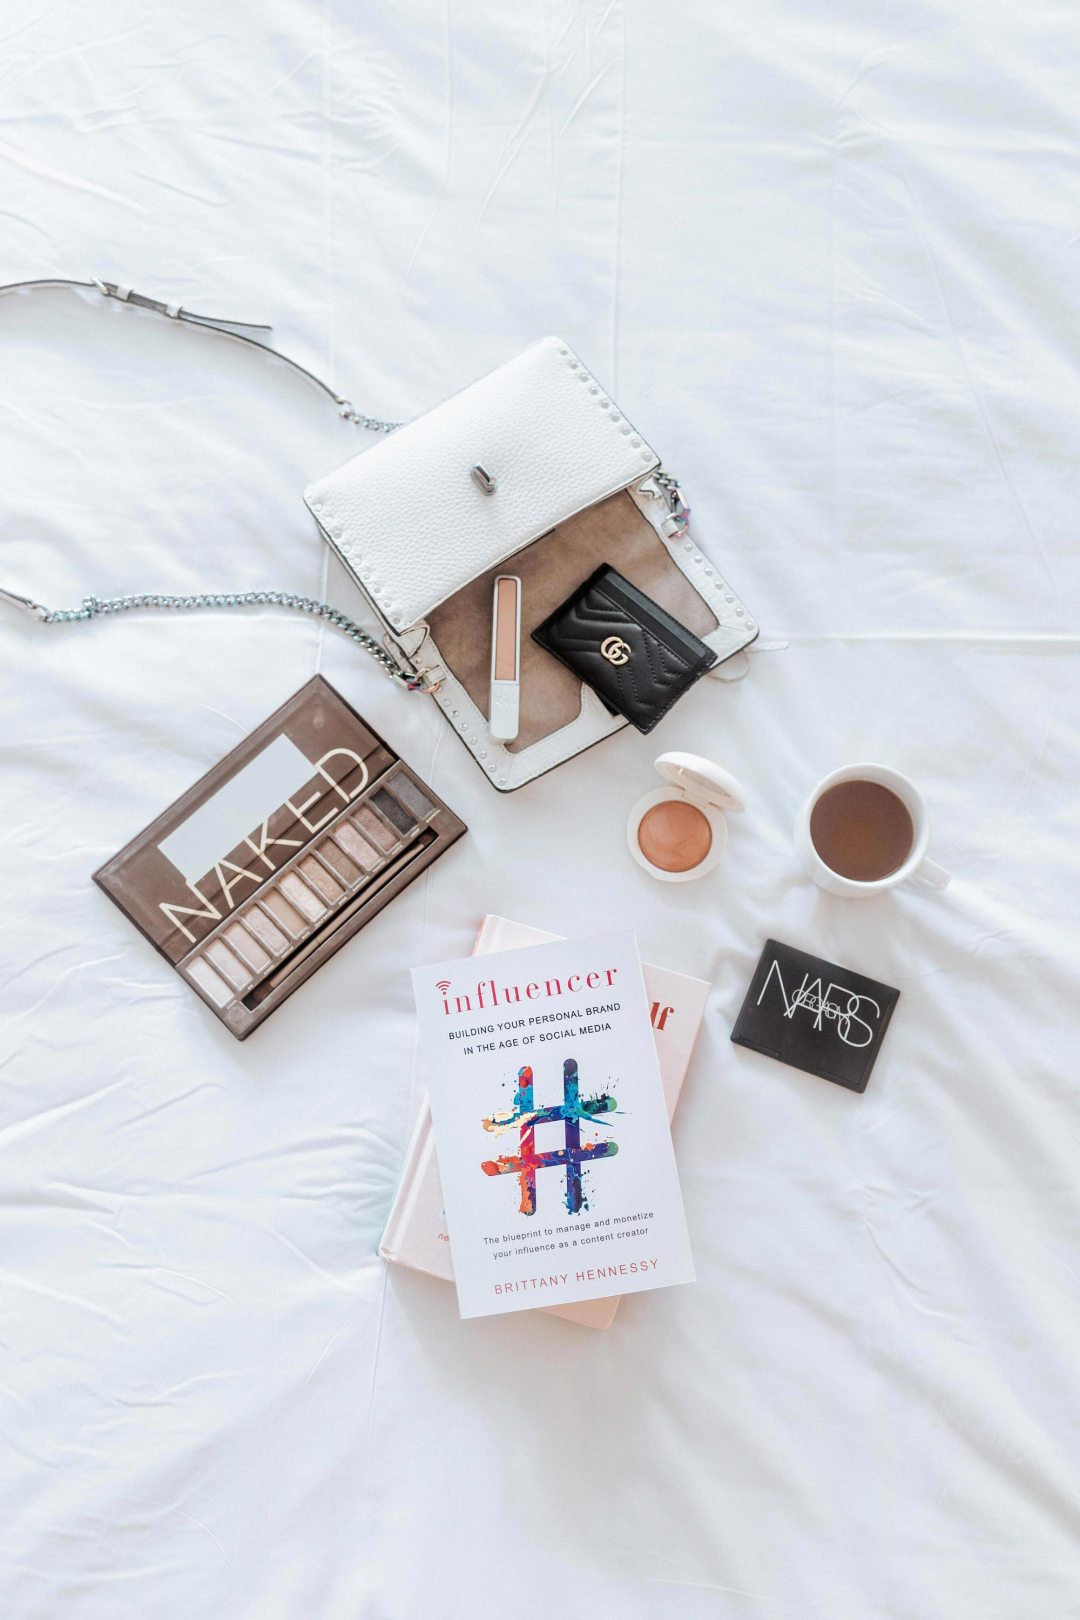 A Must Read Book to up Your Influencer Marketing Game